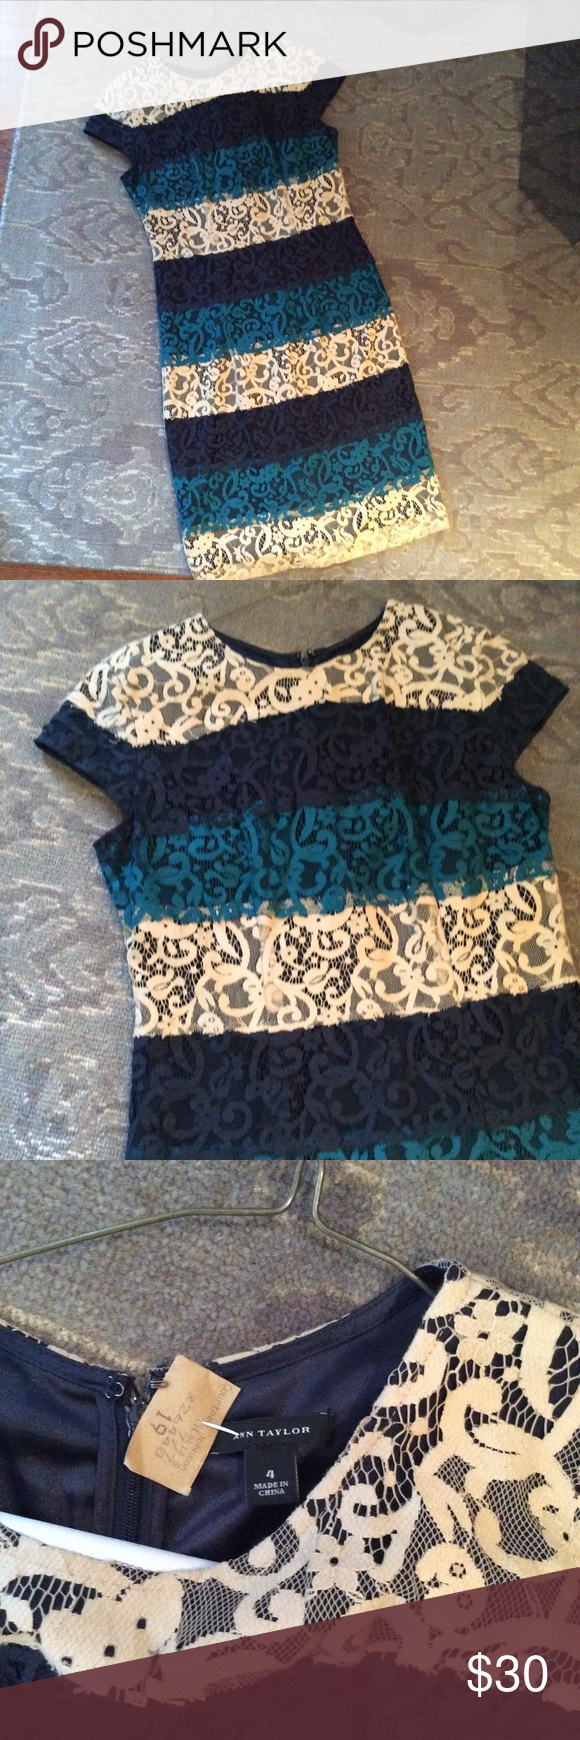 Ann Taylor Lacy Party Dress Excellent condition. Perfect for the holiday season! Ann Taylor Dresses Midi